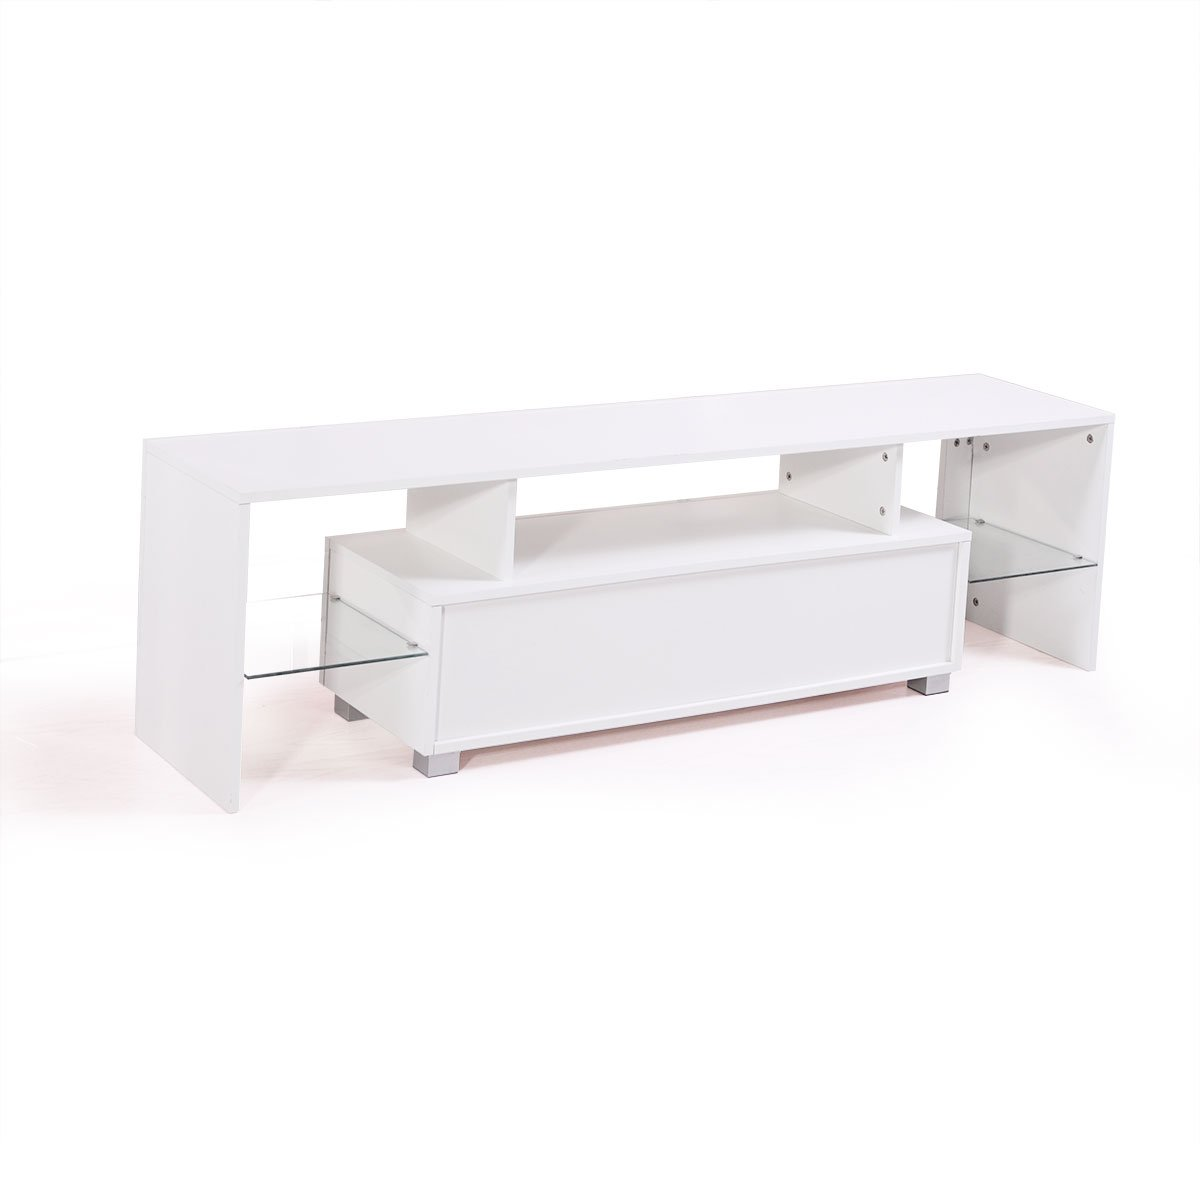 thegreatshopman Modern White 63'' TV Stand Cabinet Console w/LED Light Shelves by thegreatshopman